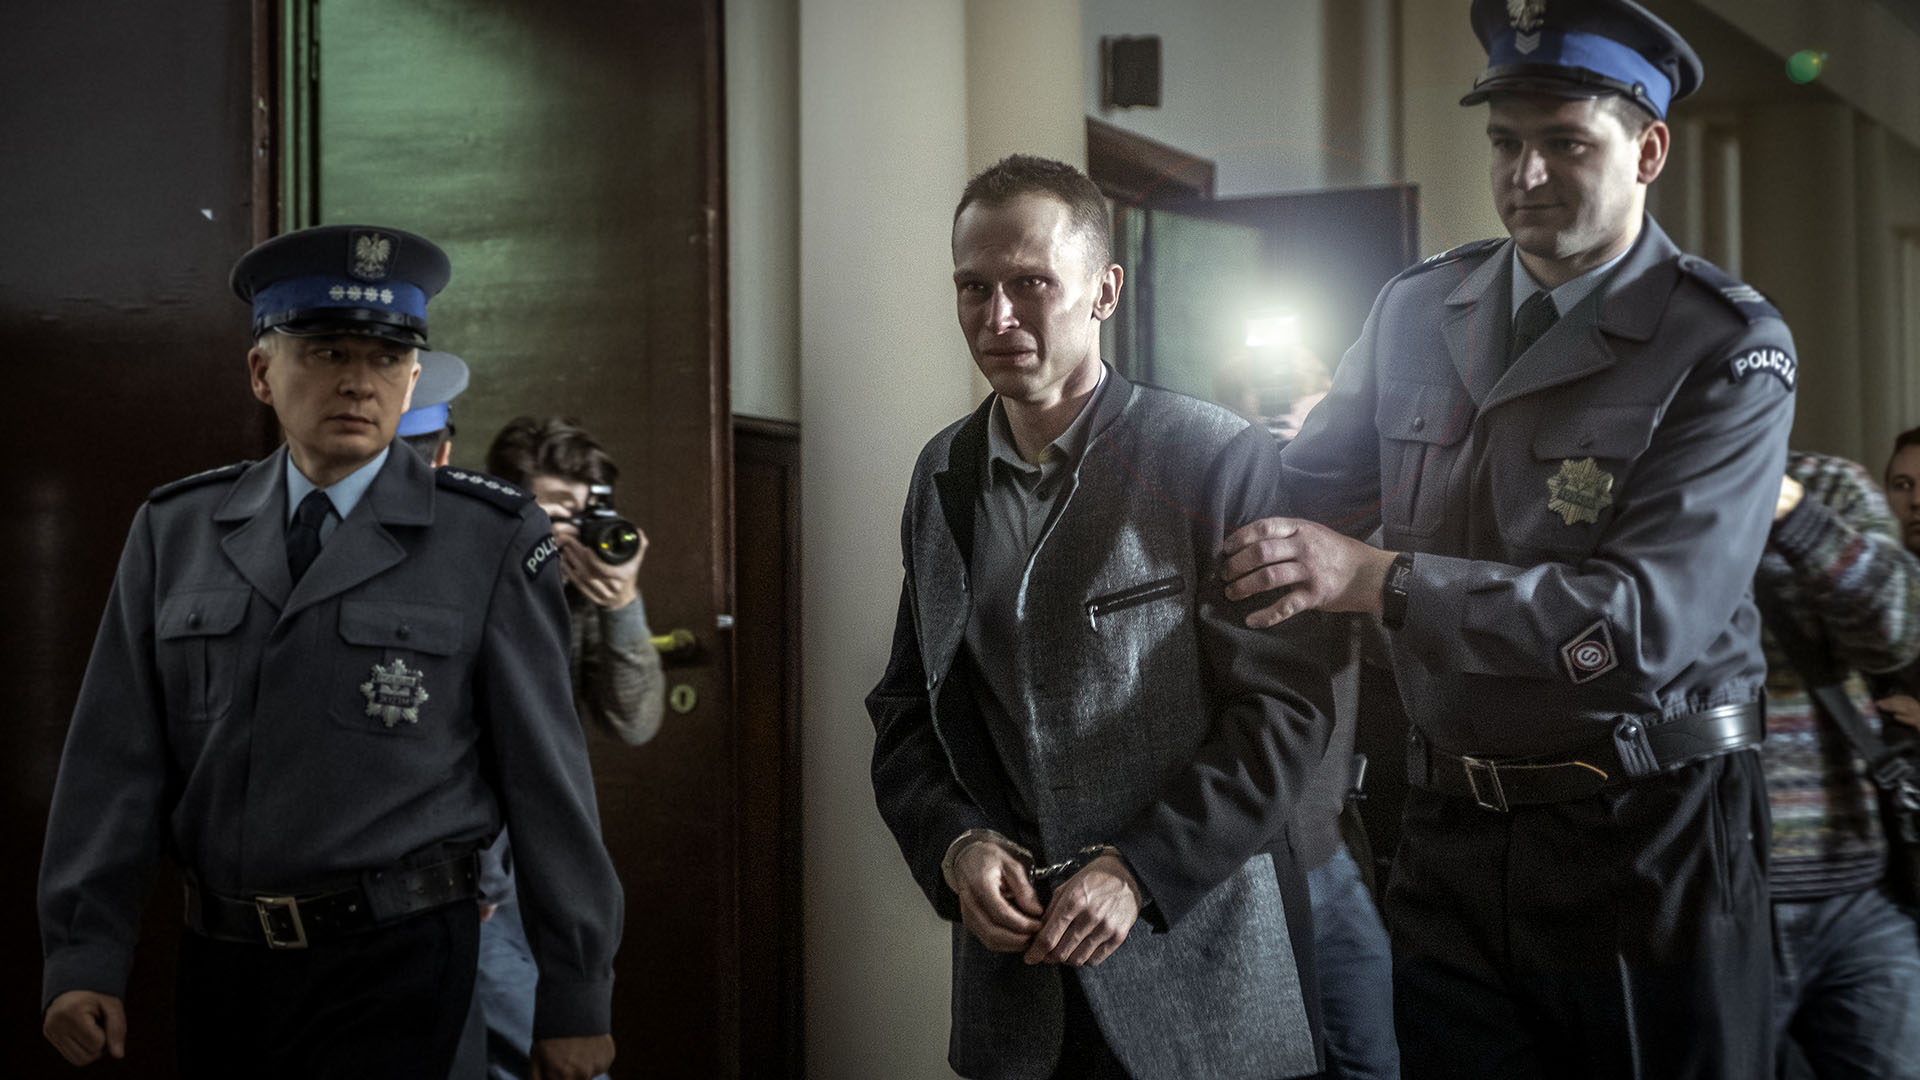 25 Years of Innocence. The Case of Tomek Komenda